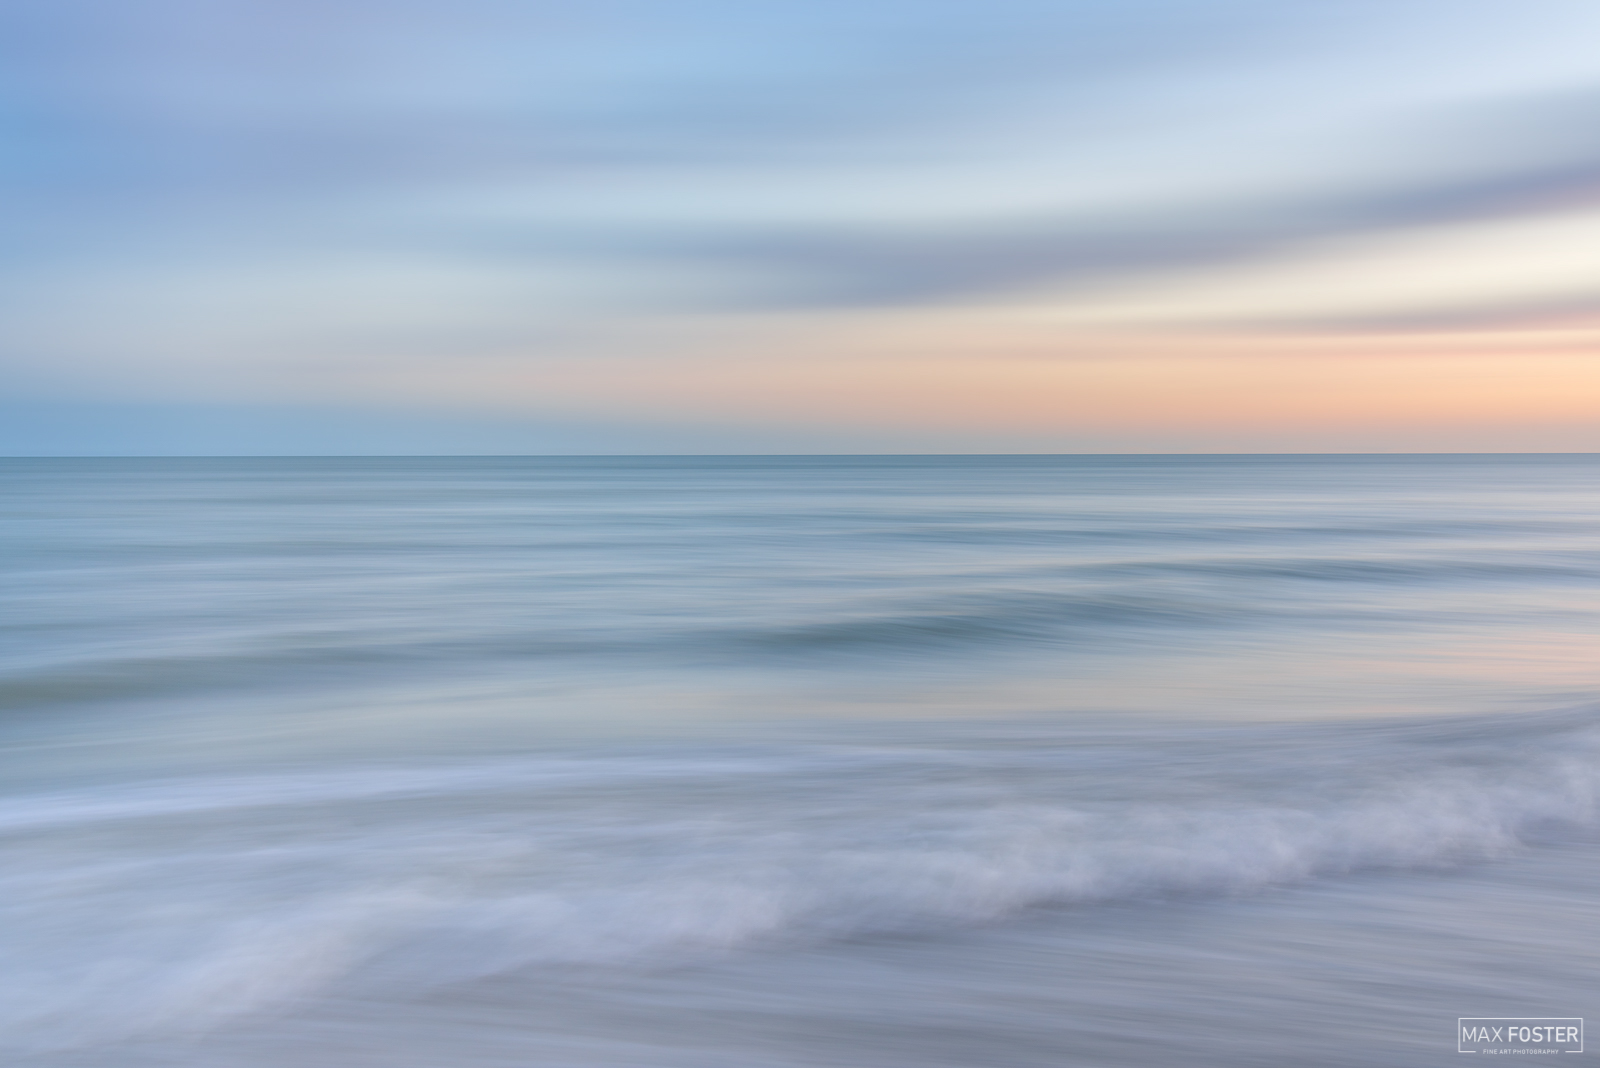 Sanibel Island, Florida, Dreaming of Blue, Barrier Islands, photo